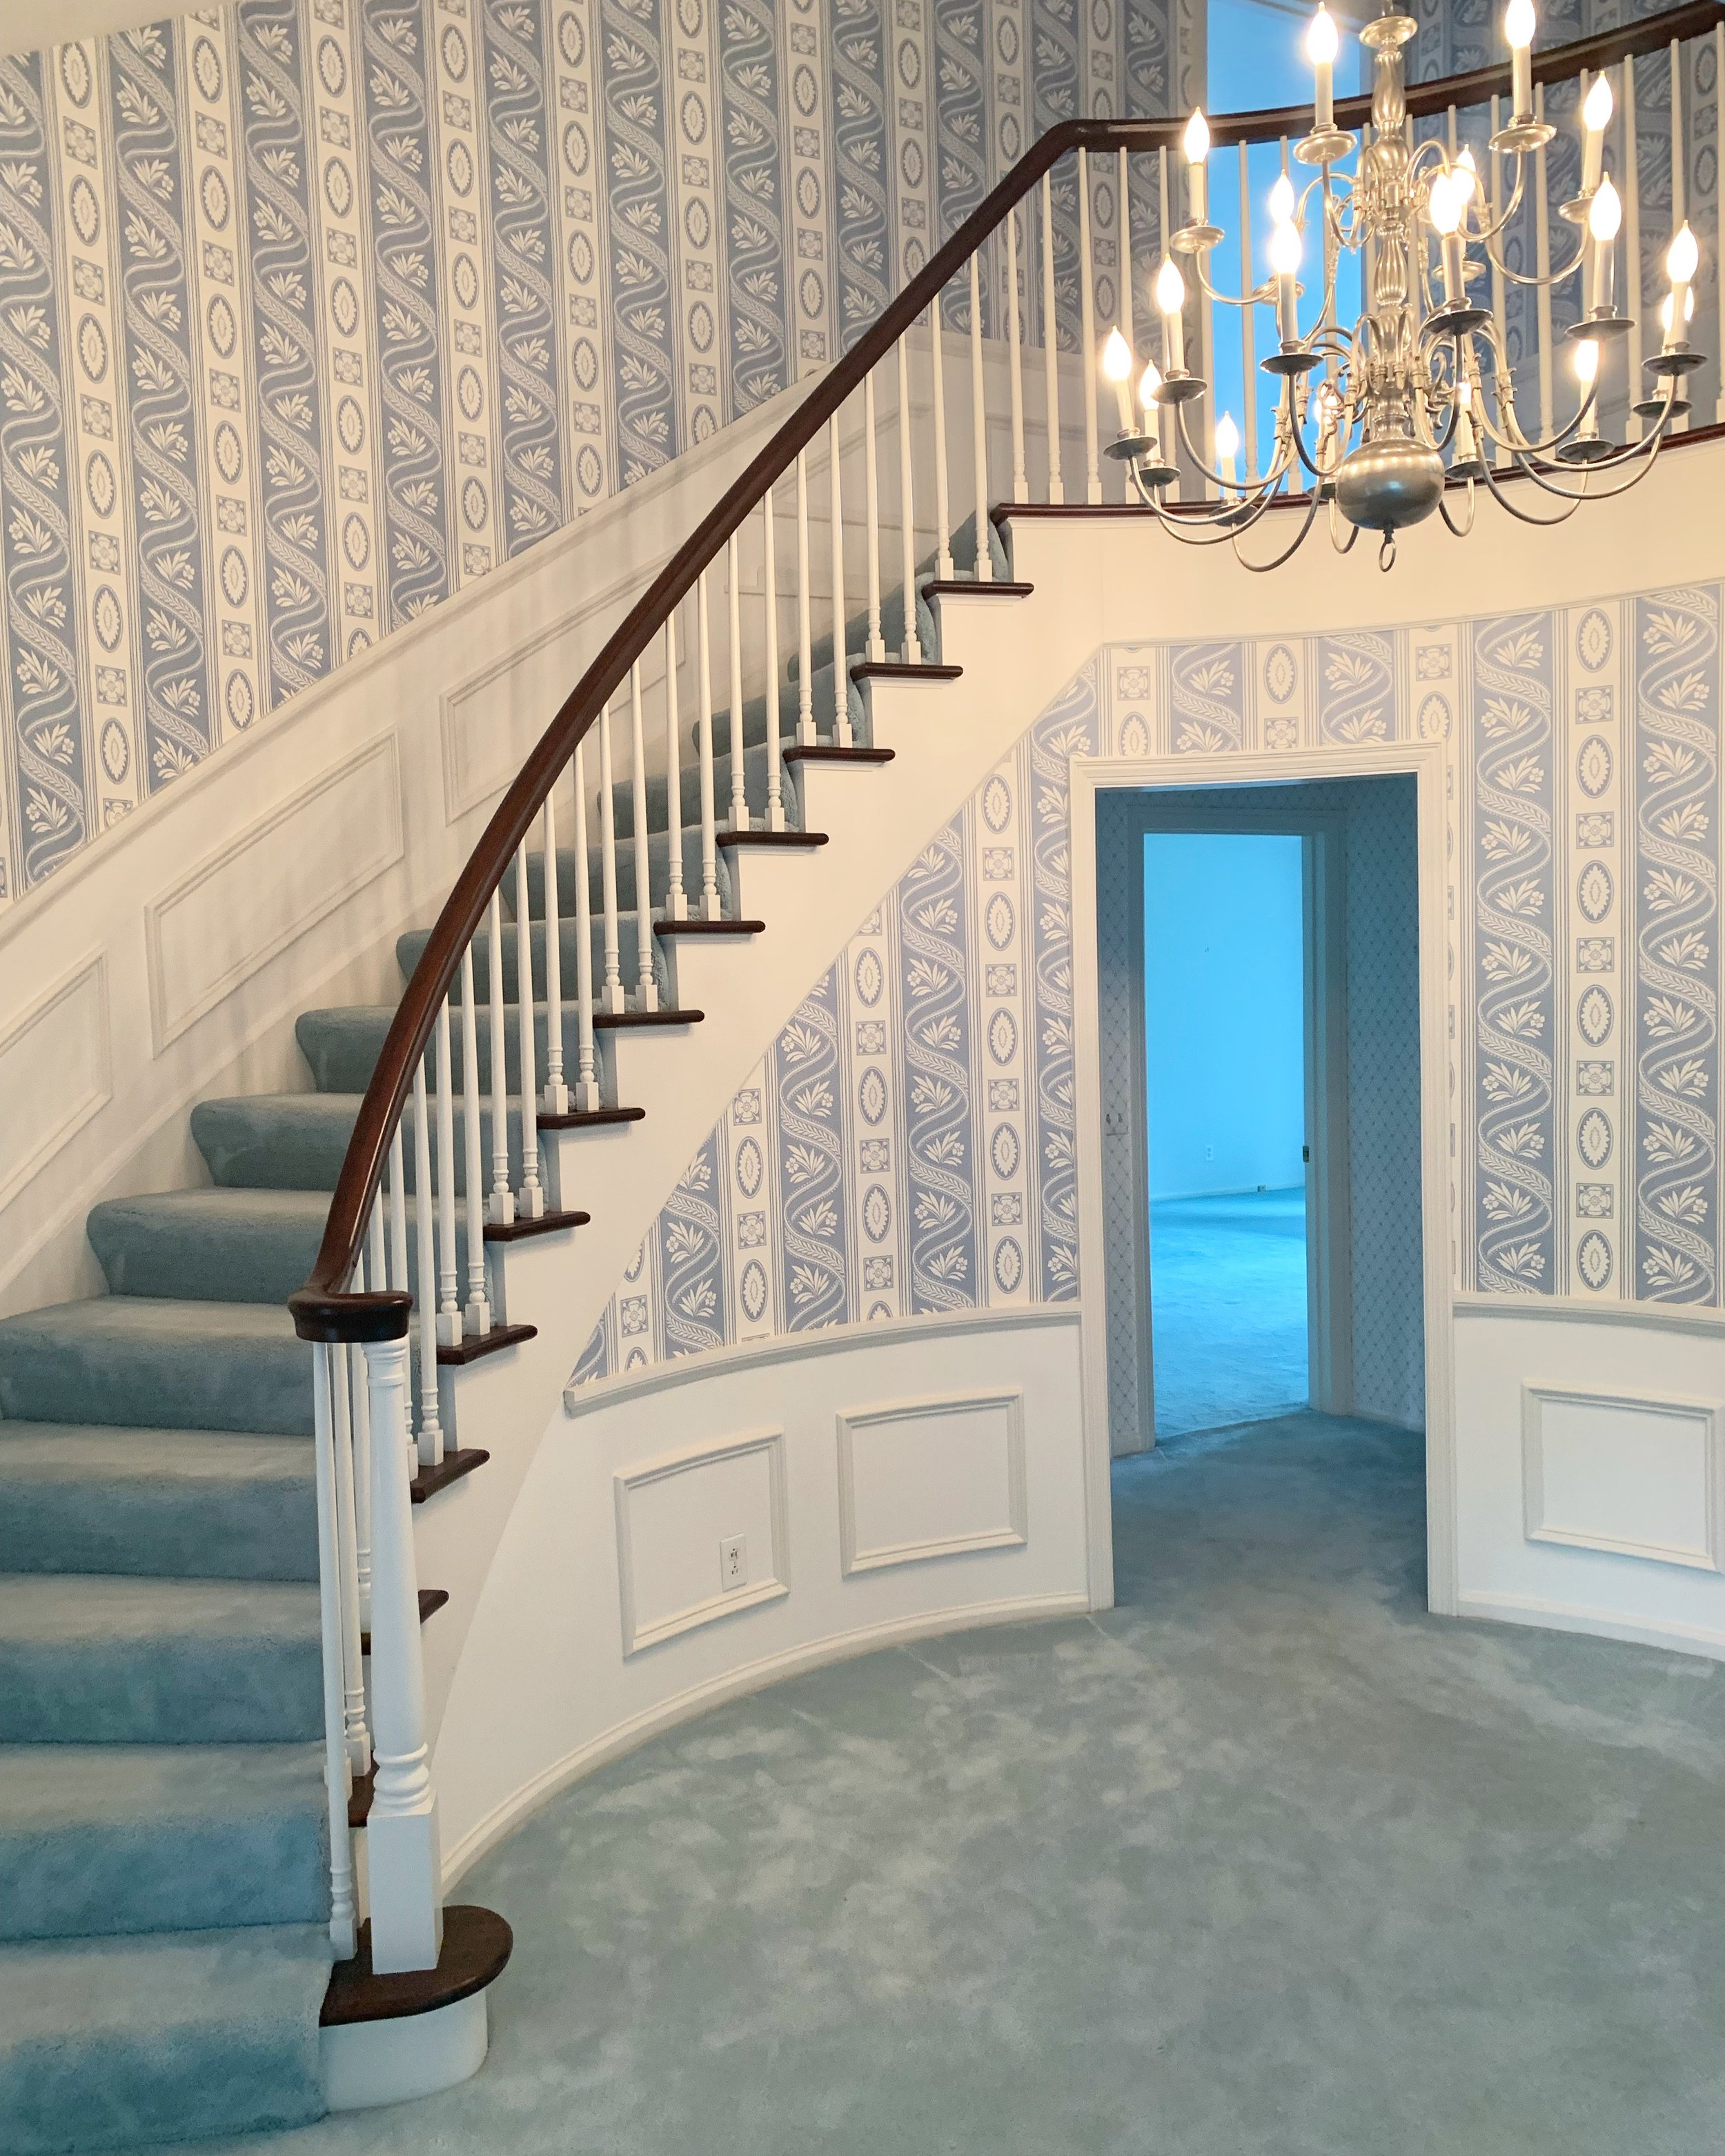 The wallpaper in the foyer is just one of my wallpaper removal projects on the list.